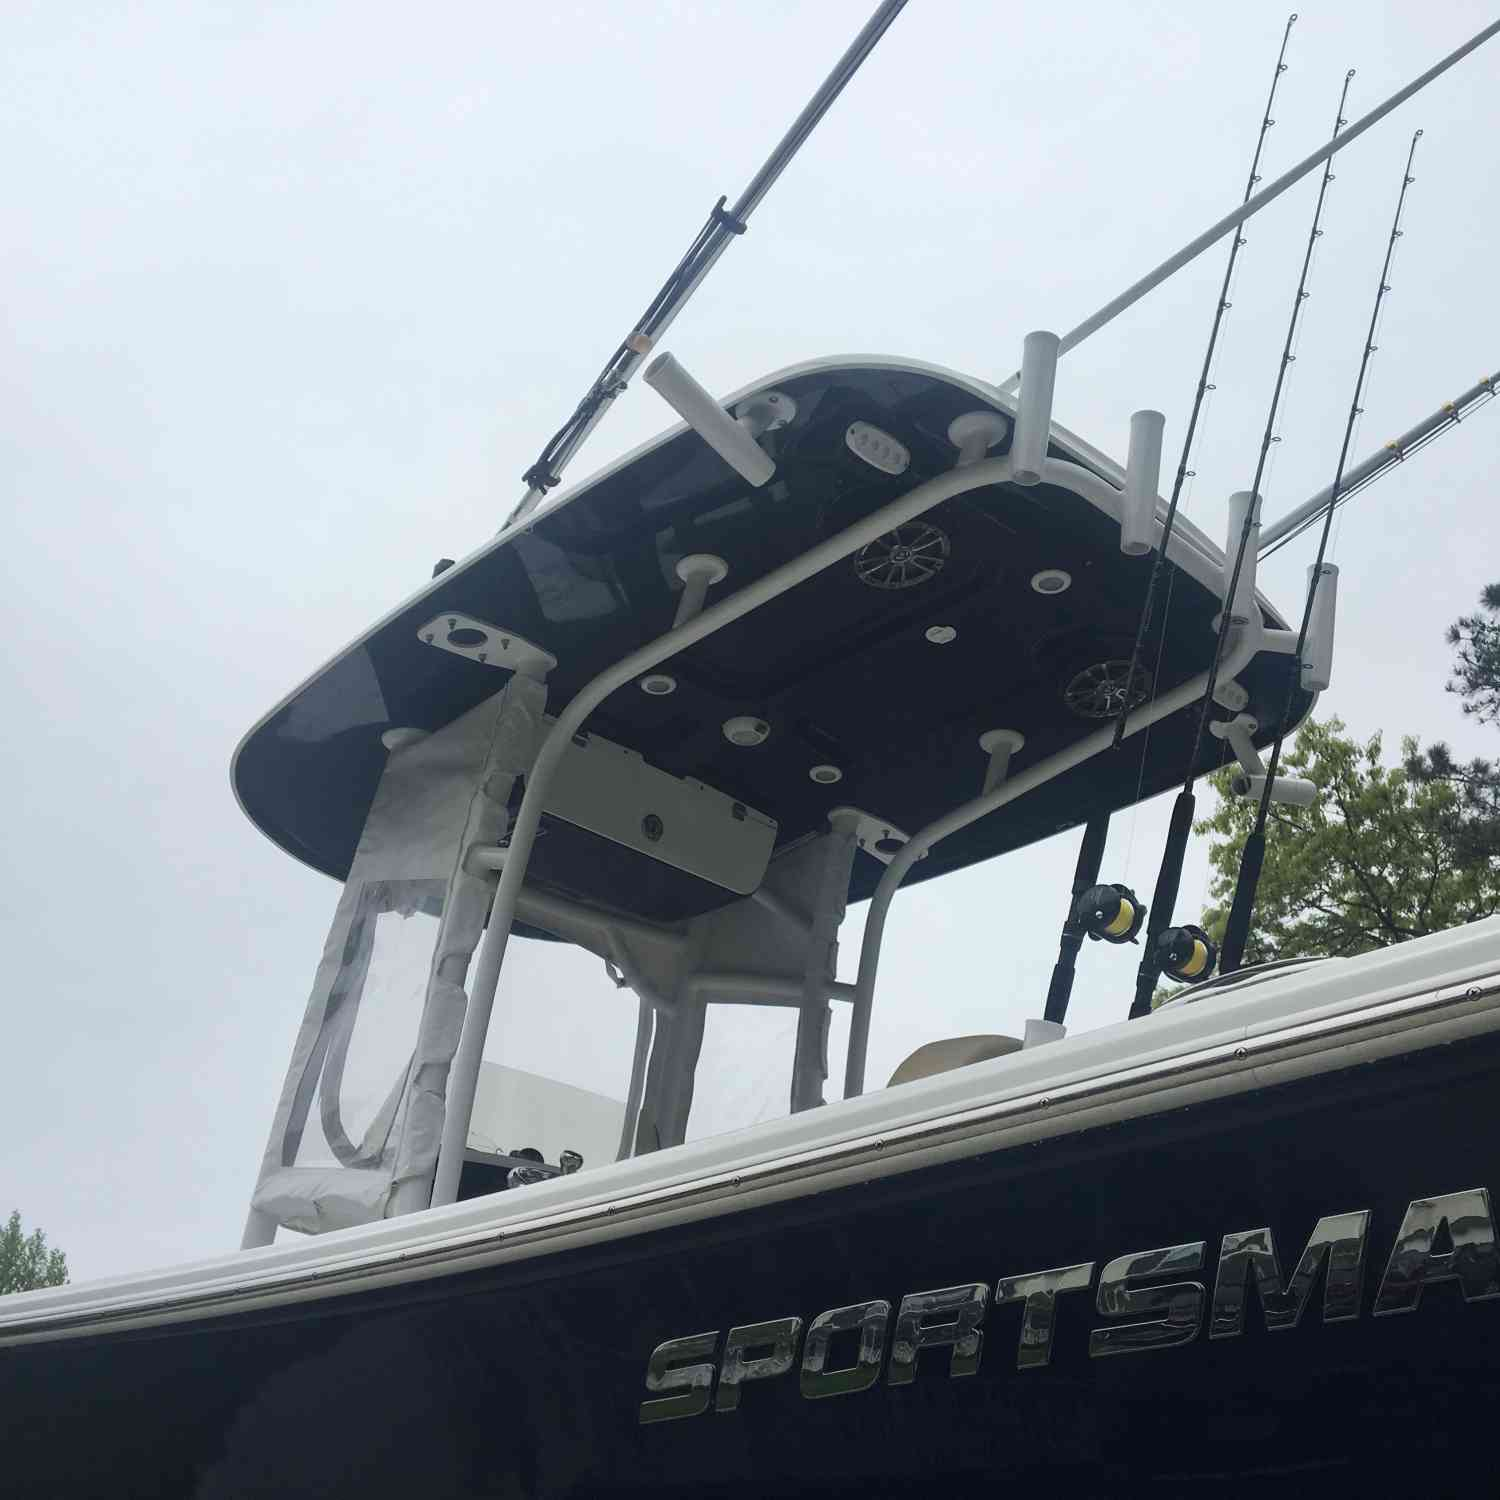 Title: Current Obsession - On board their Sportsman Heritage 231 Center Console - Location: Miller place. Participating in the Photo Contest #SportsmanMay2018